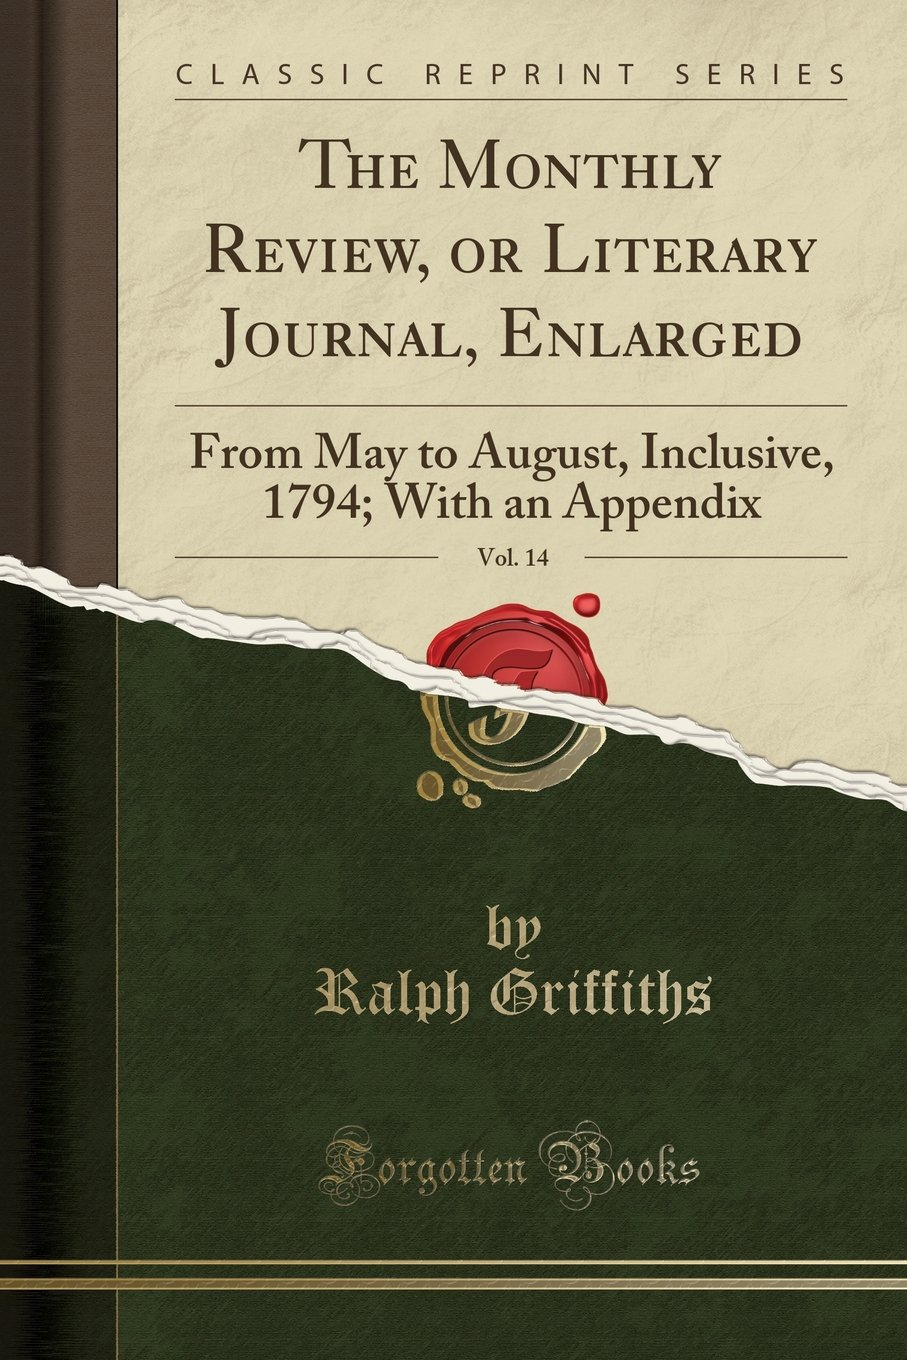 Download The Monthly Review, or Literary Journal, Enlarged, Vol. 14: From May to August, Inclusive, 1794; With an Appendix (Classic Reprint) ebook